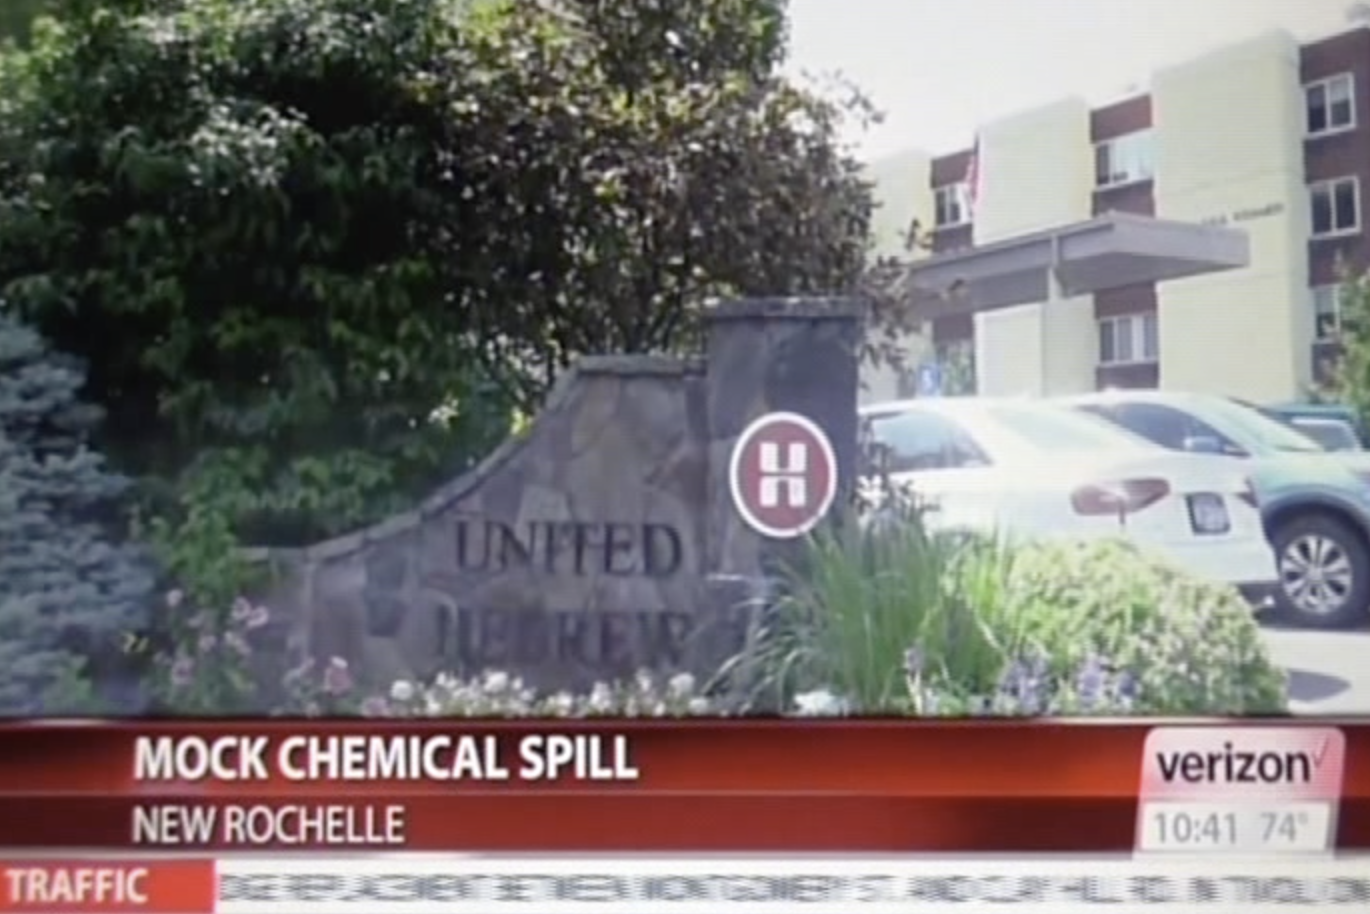 Mock chemical spill staged at United Hebrew's nursing home in New Rochelle